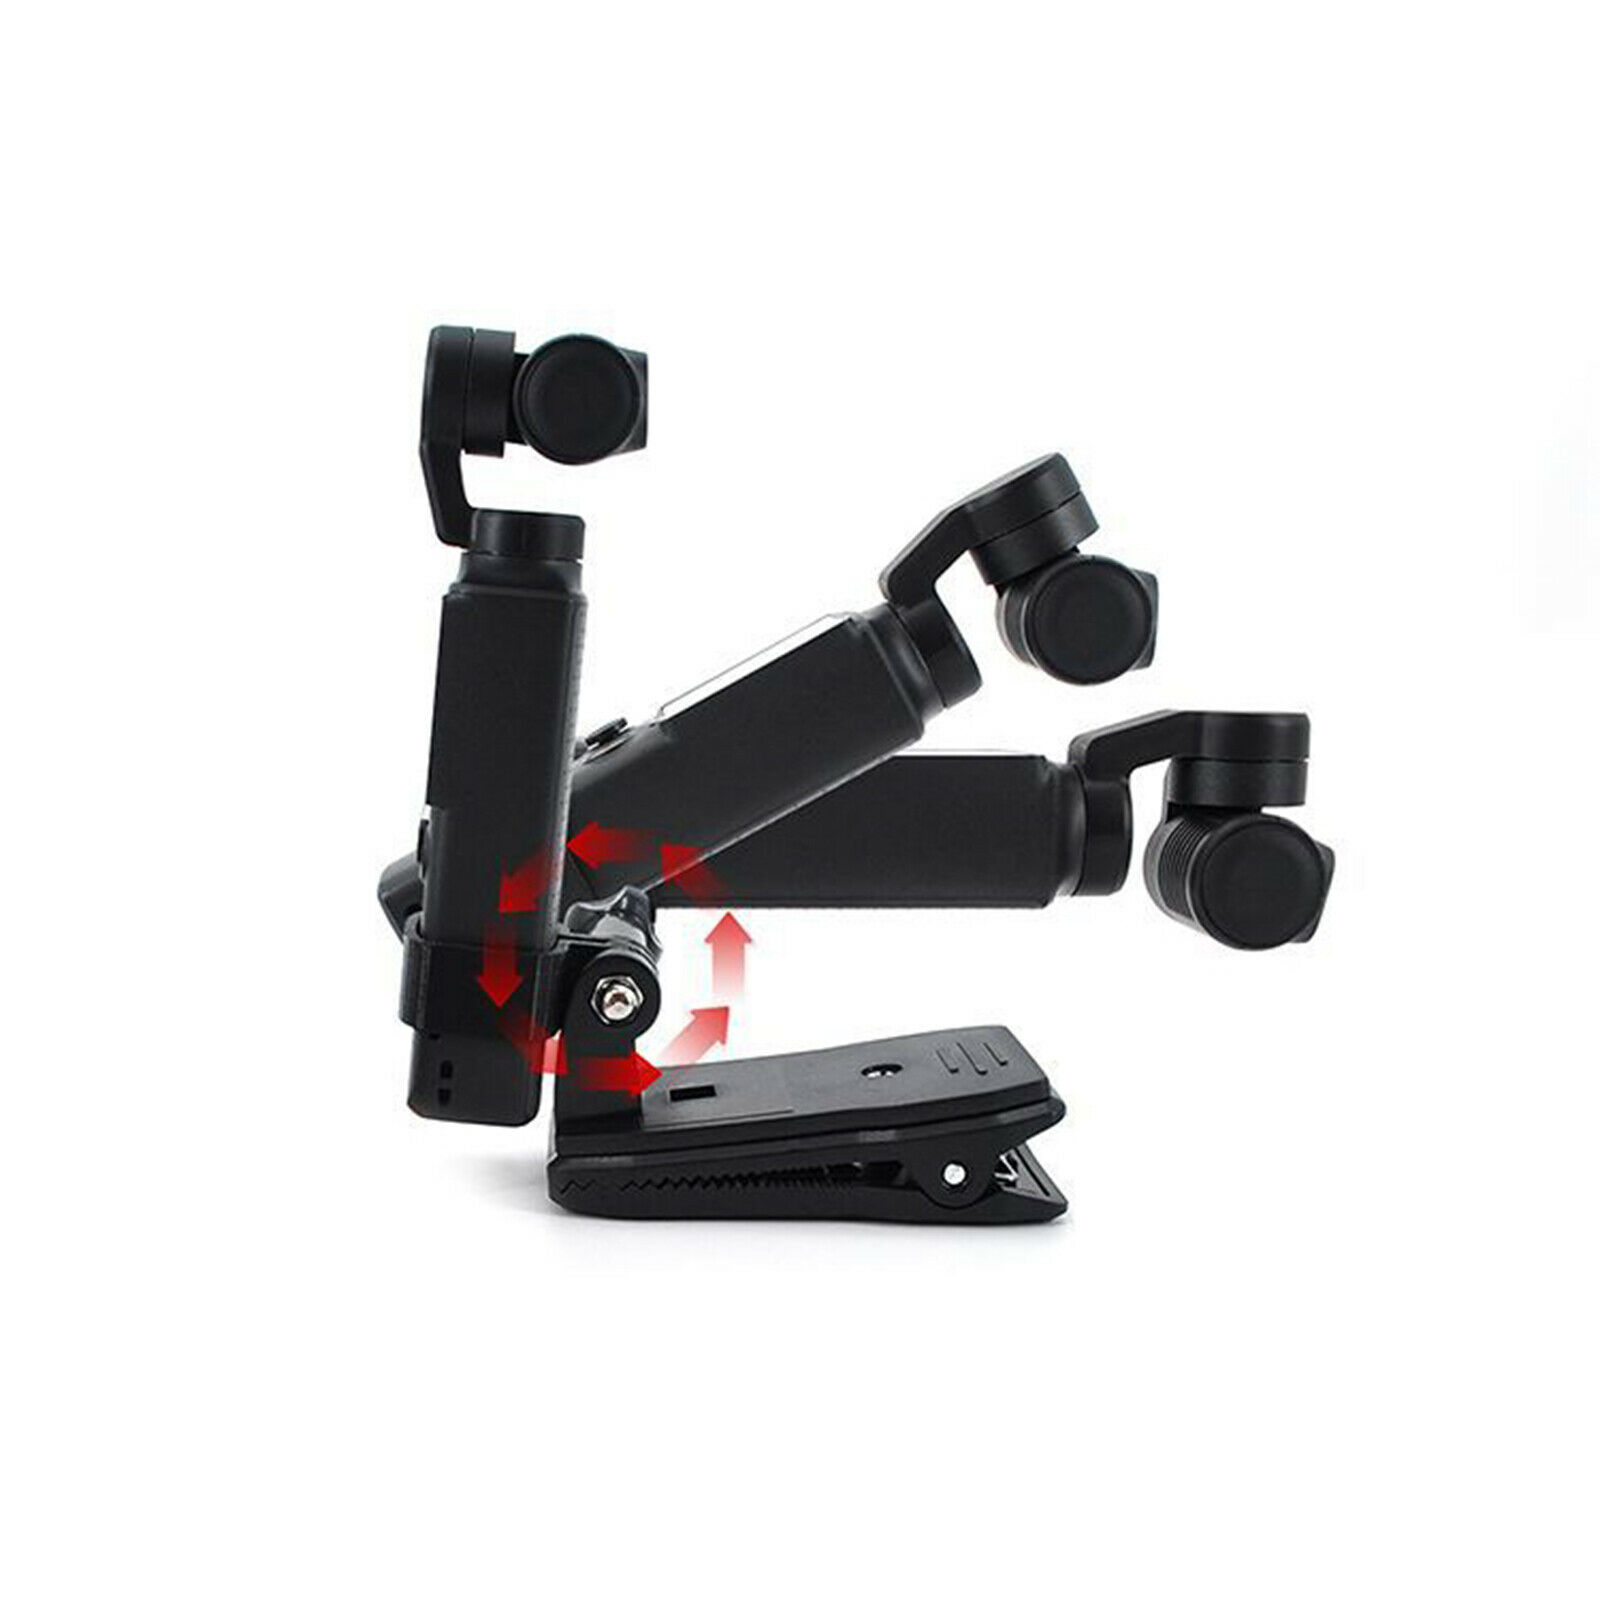 Backpack Clip Mount Holder Support Adapter Kits Pour FIMI PALM Handheld Camera